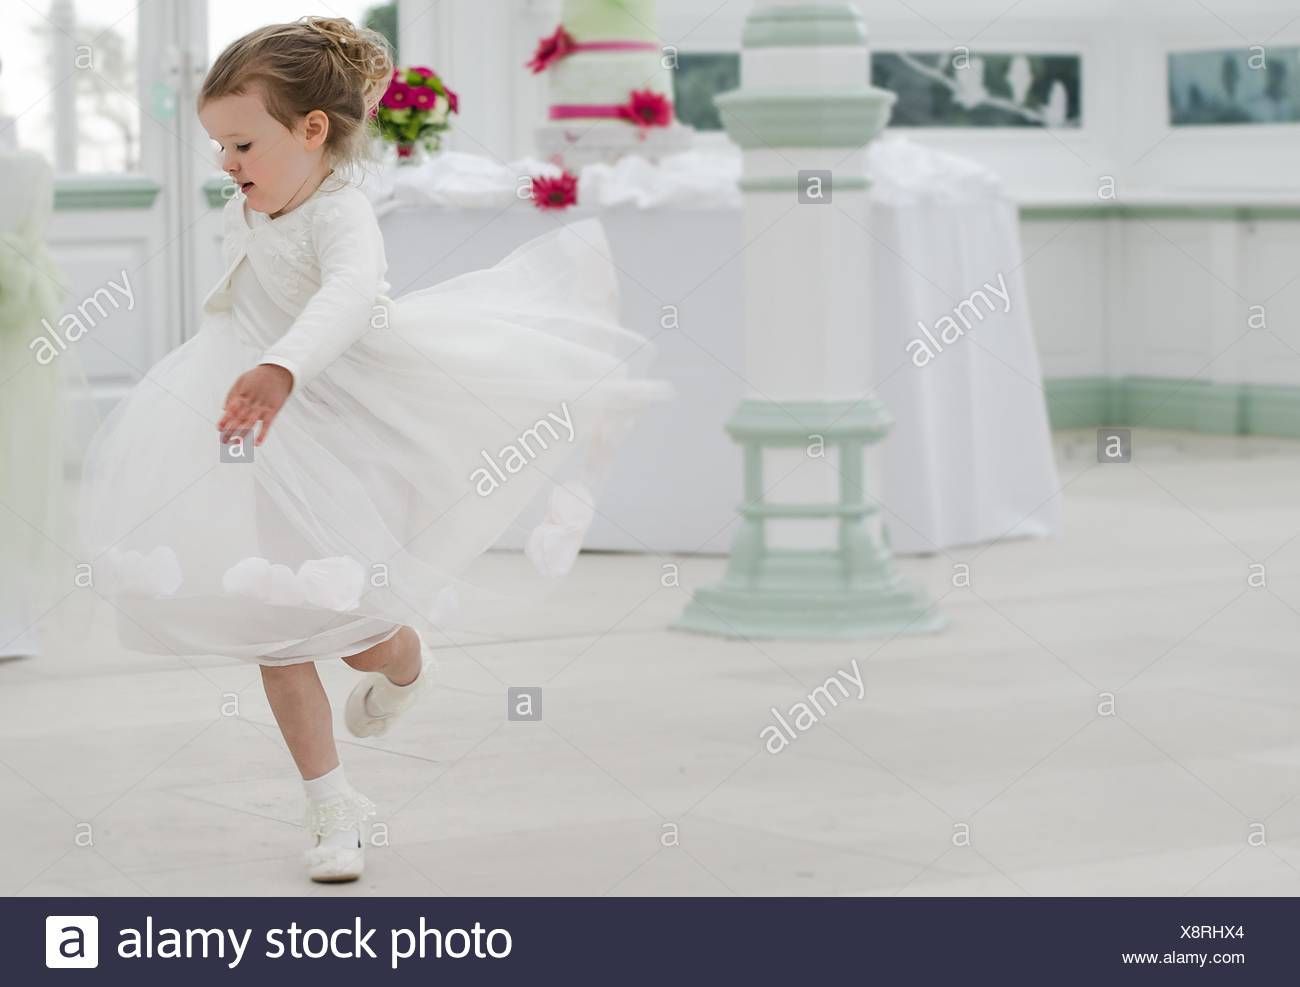 Bridesmaid dancing at a wedding - Stock Image